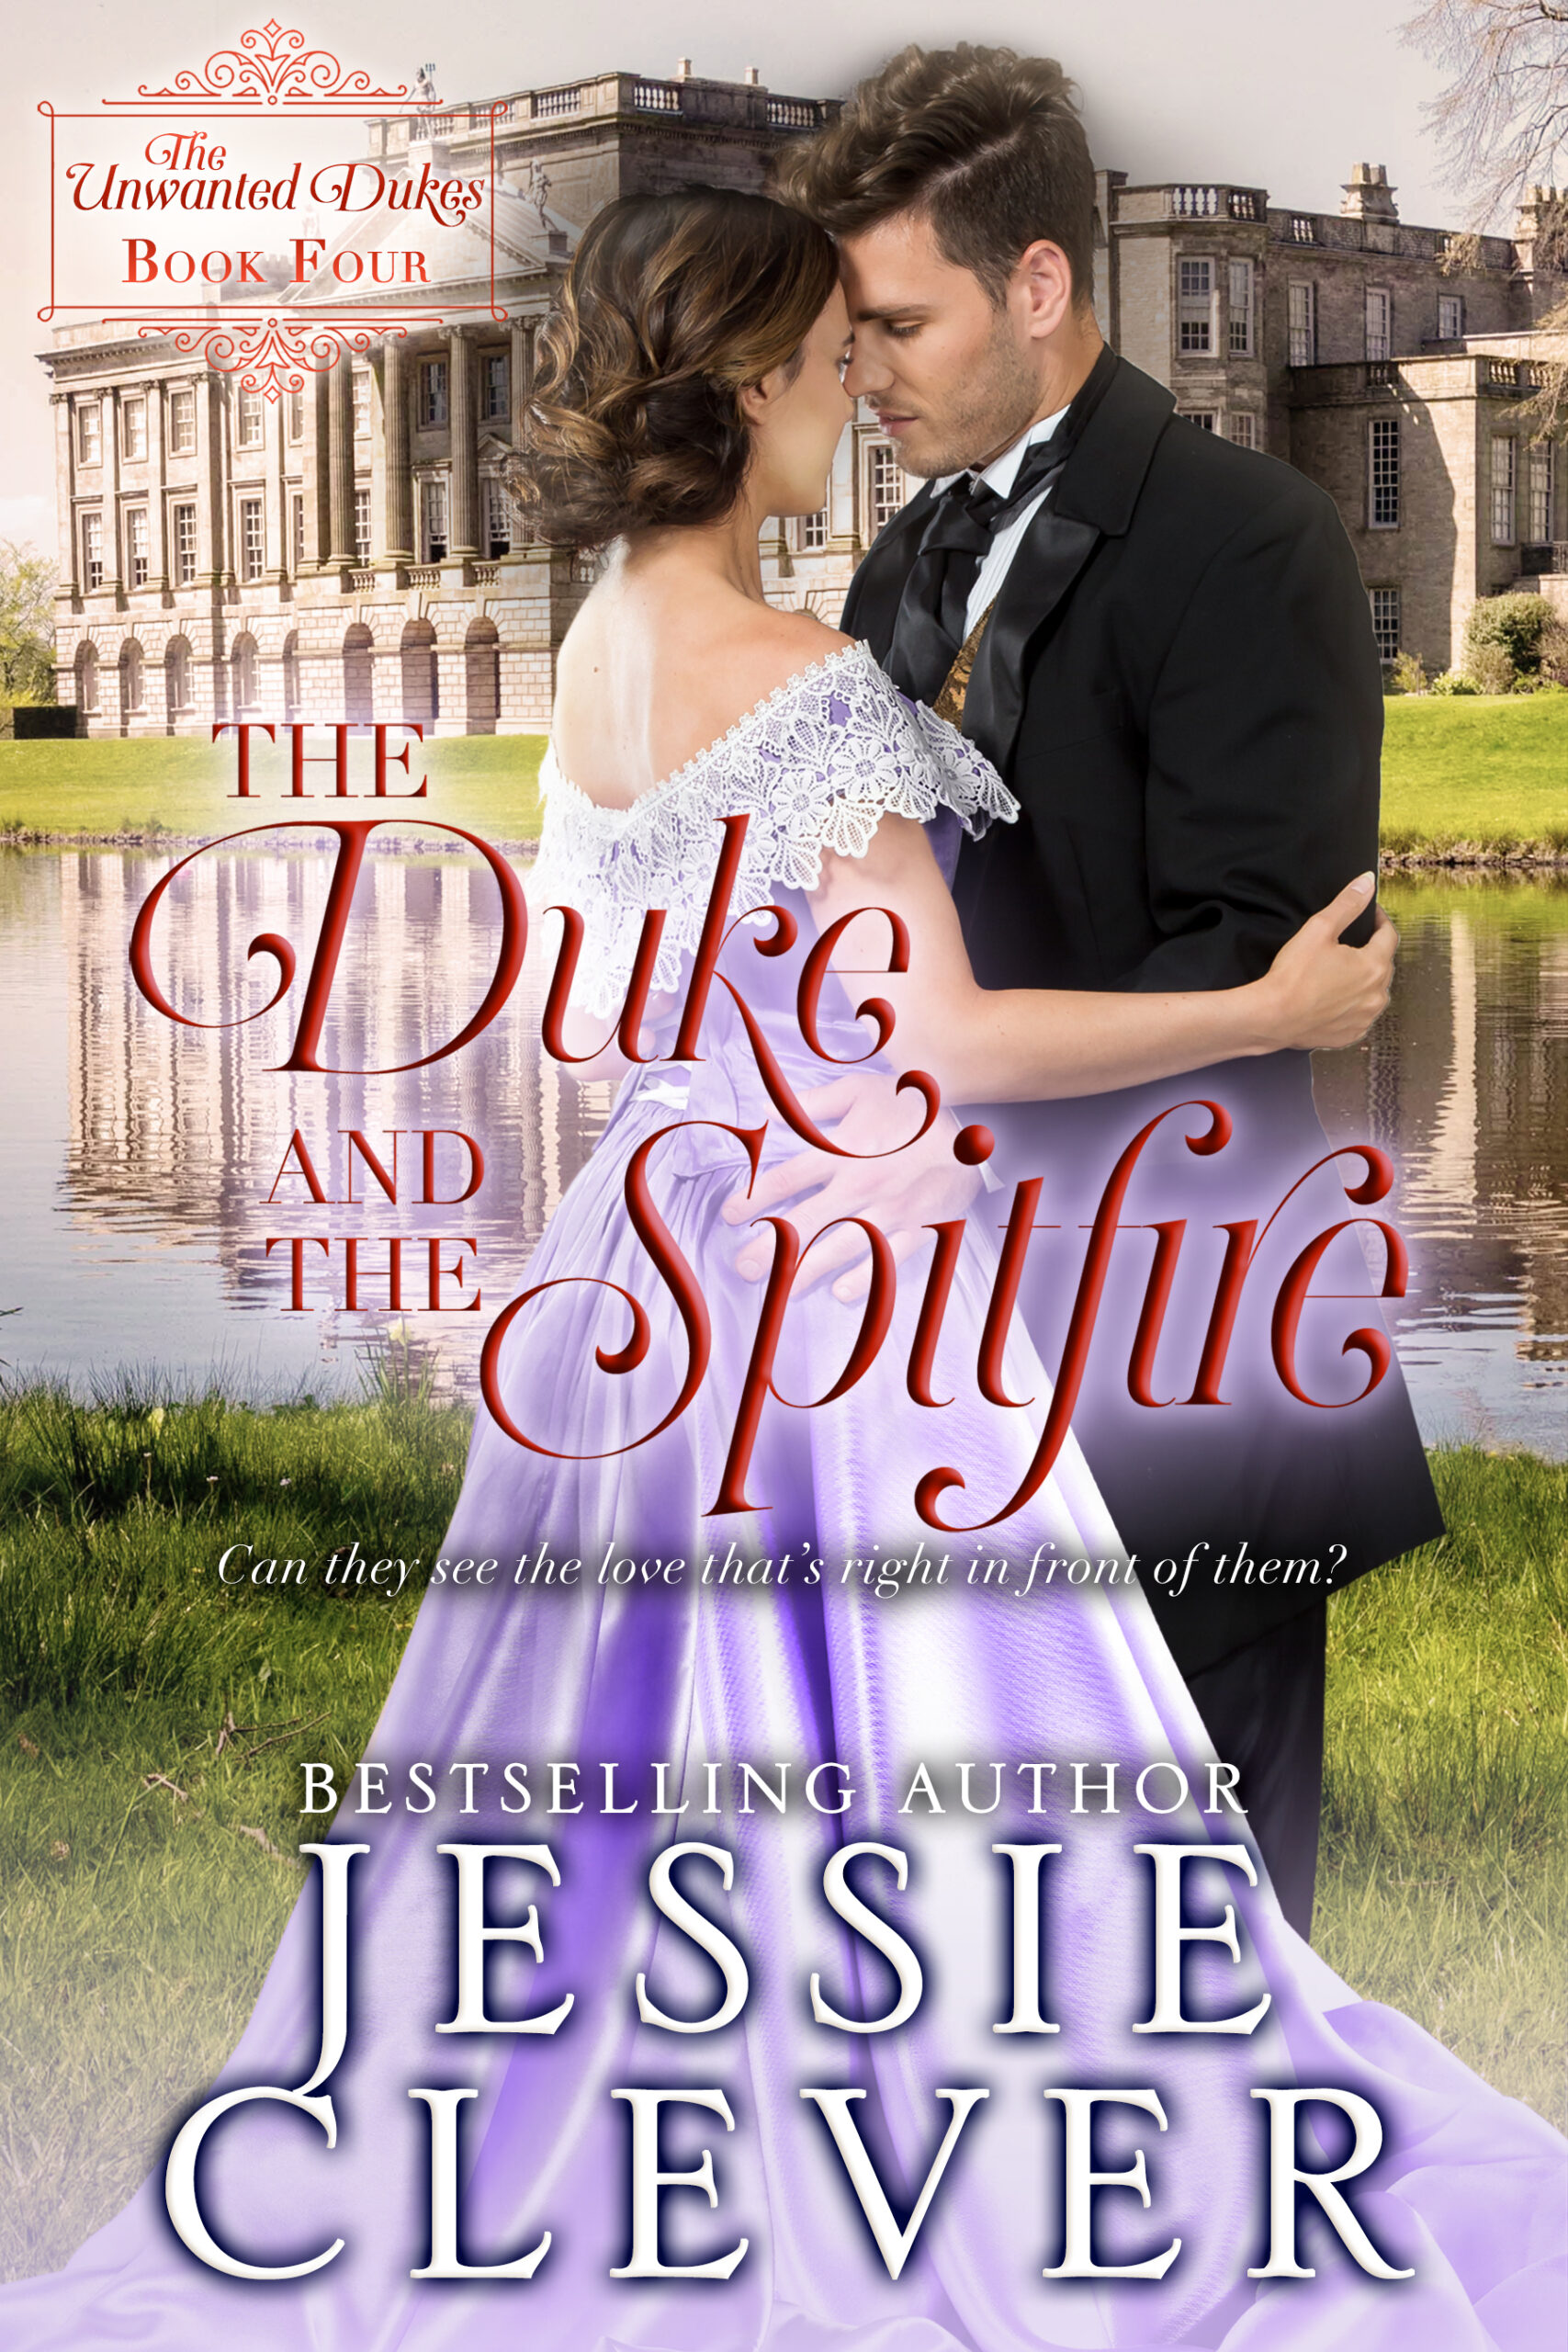 Enjoy an Excerpt from The Duke and the Spitfire